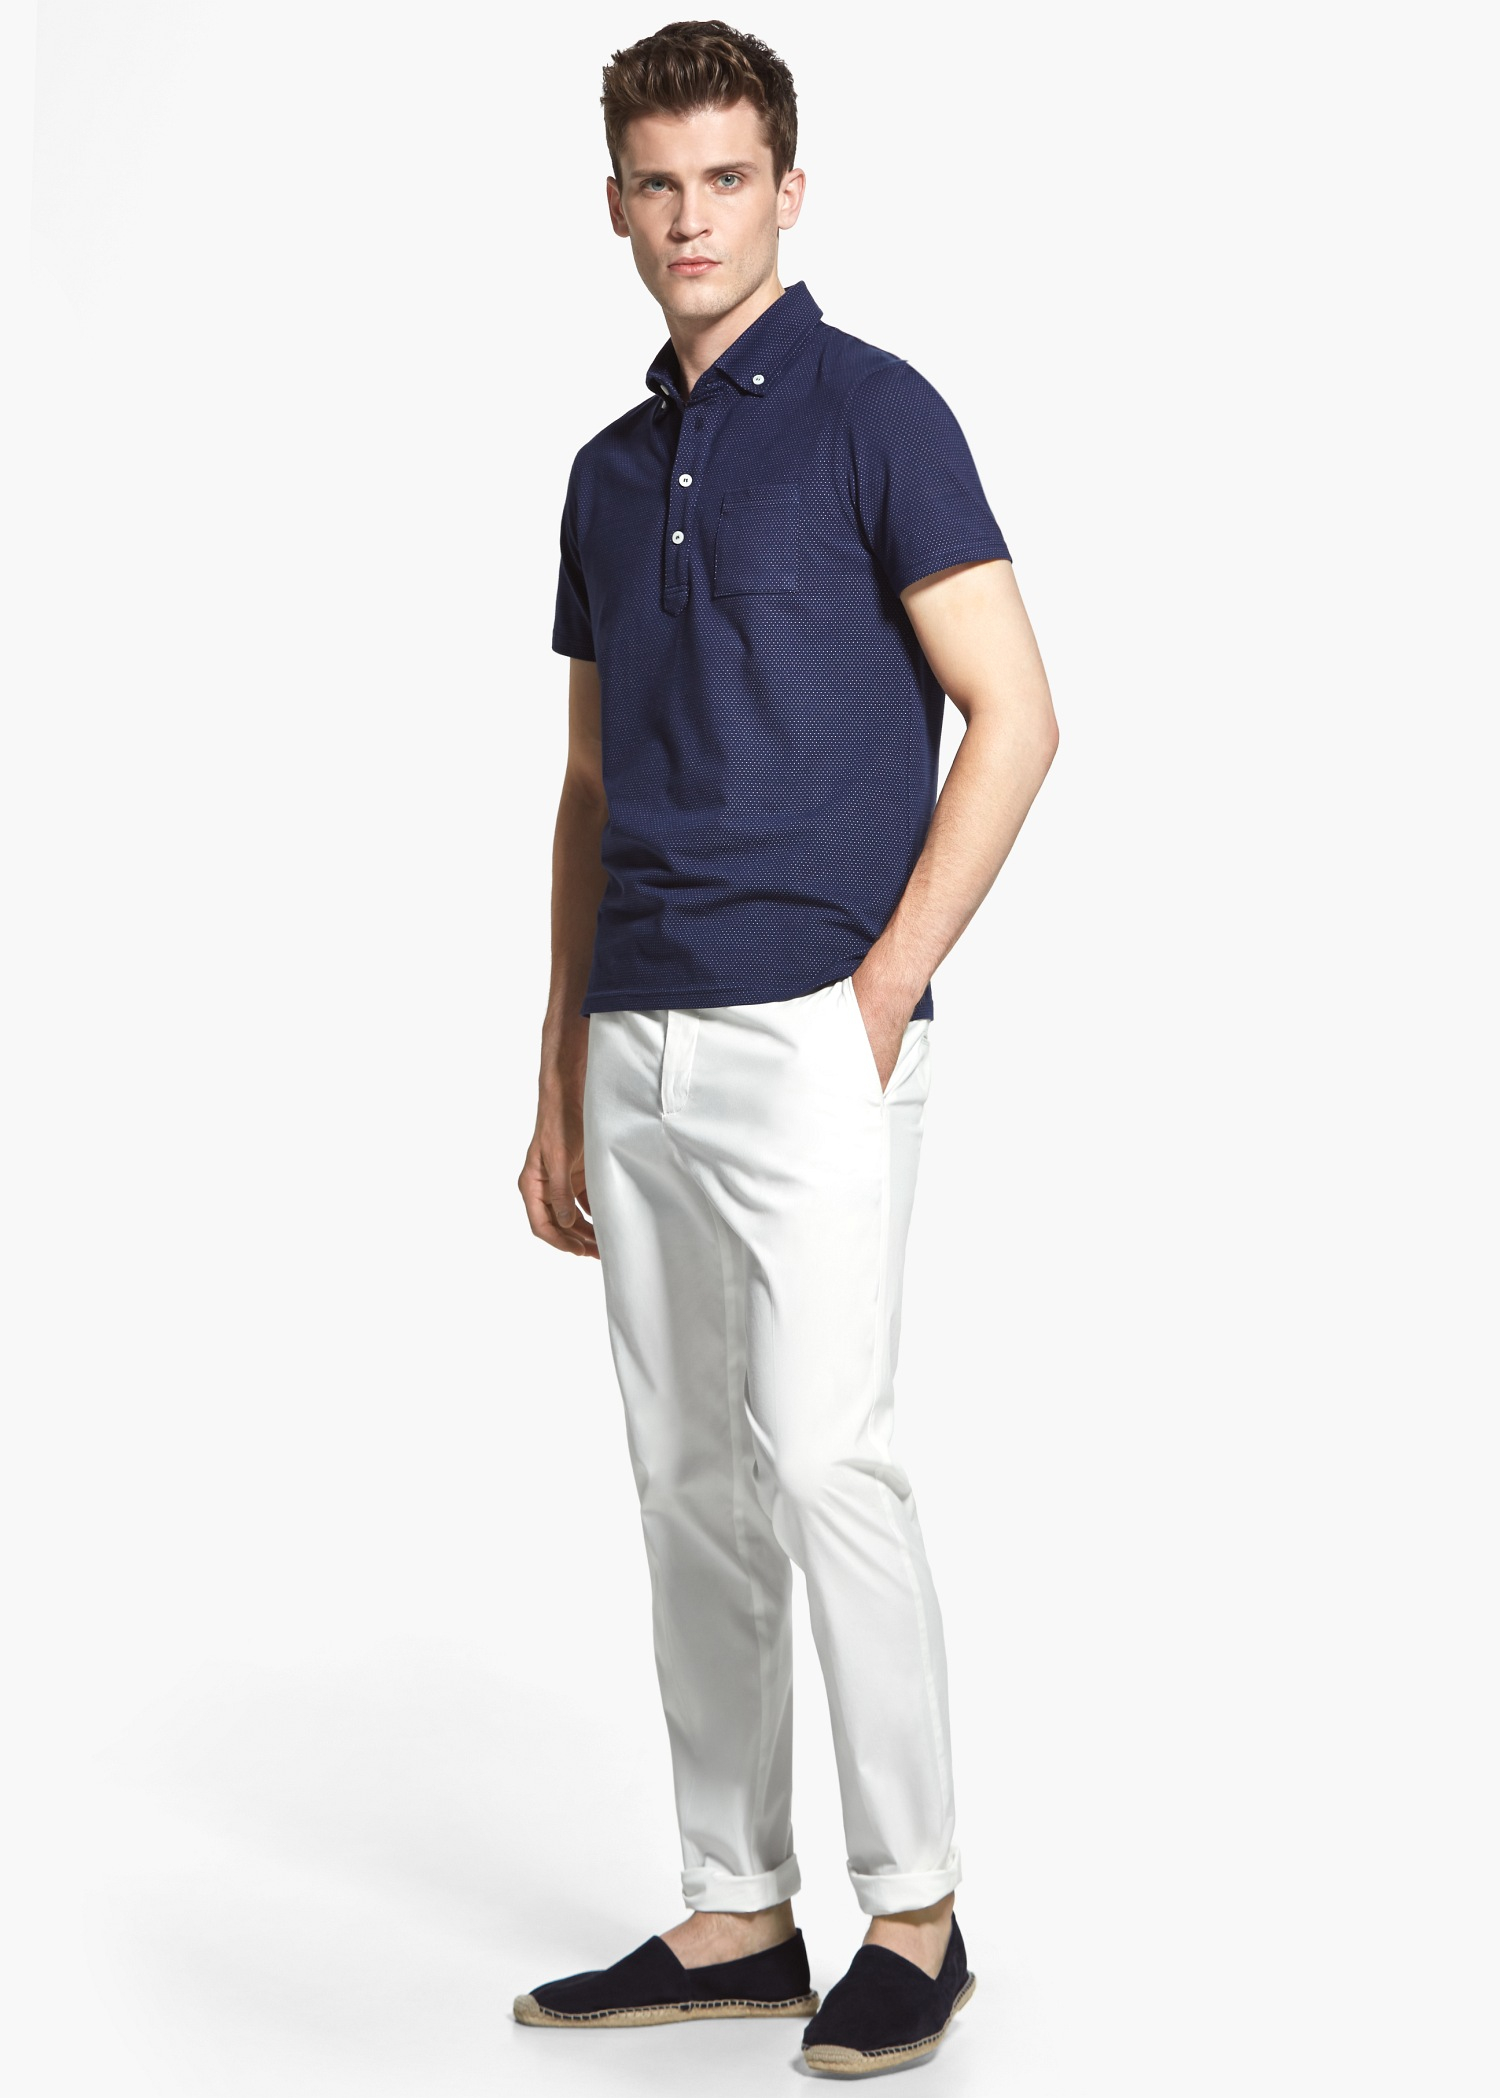 Lyst - Mango Cotton Chinos in White for Men 40f520977d80b